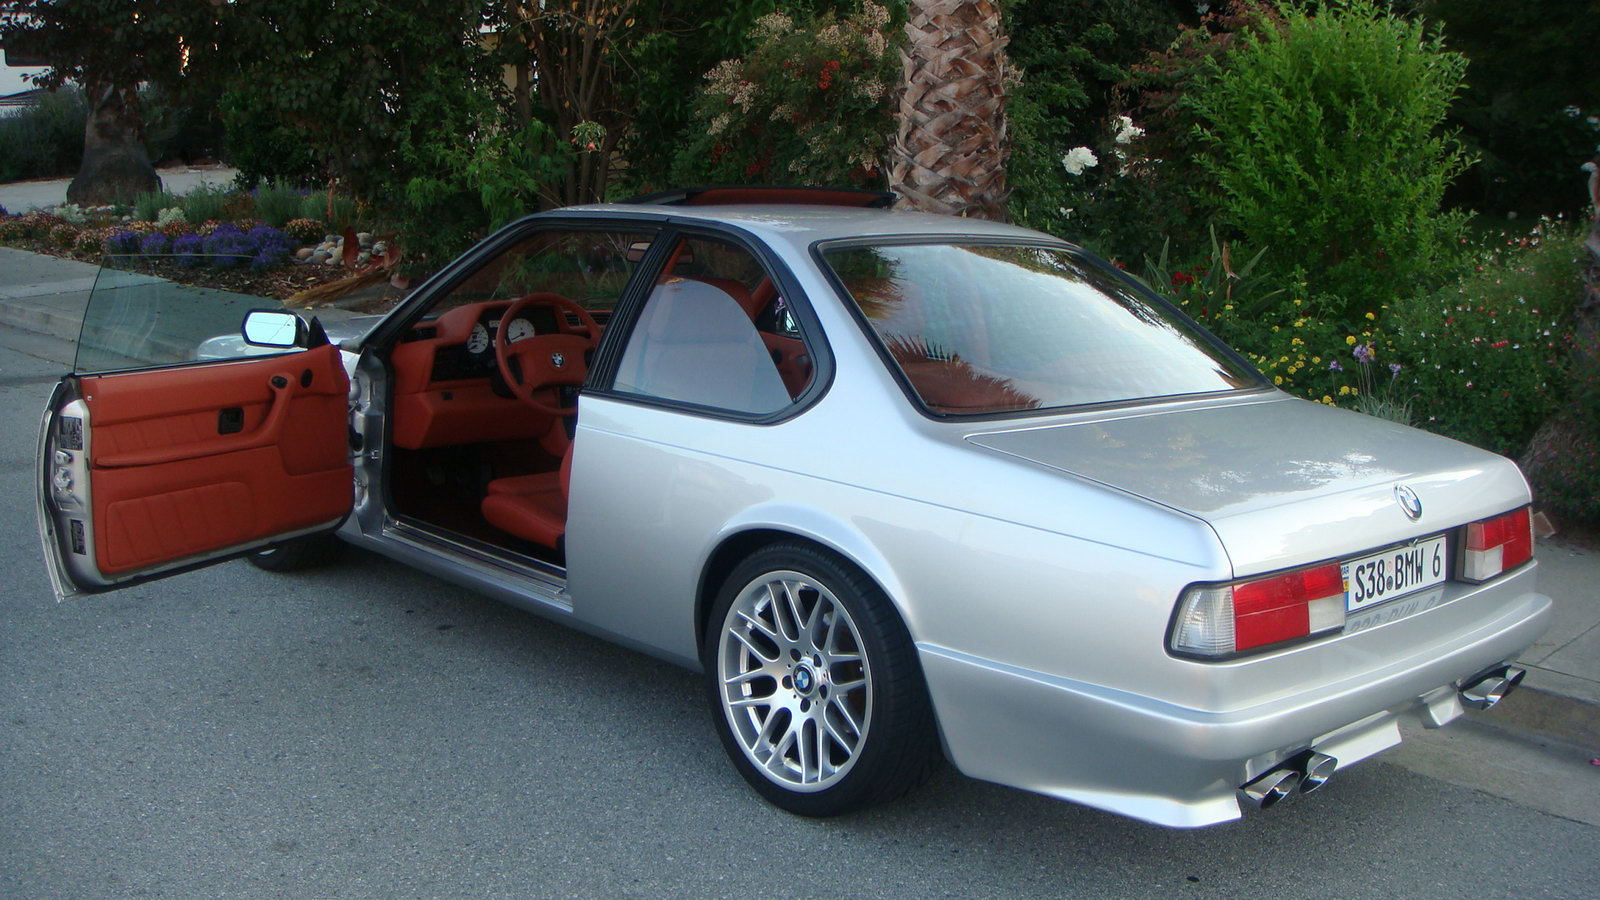 Customized 1988 BMW 6-Series Coupe with M5 Engine: Priced at $250,000!